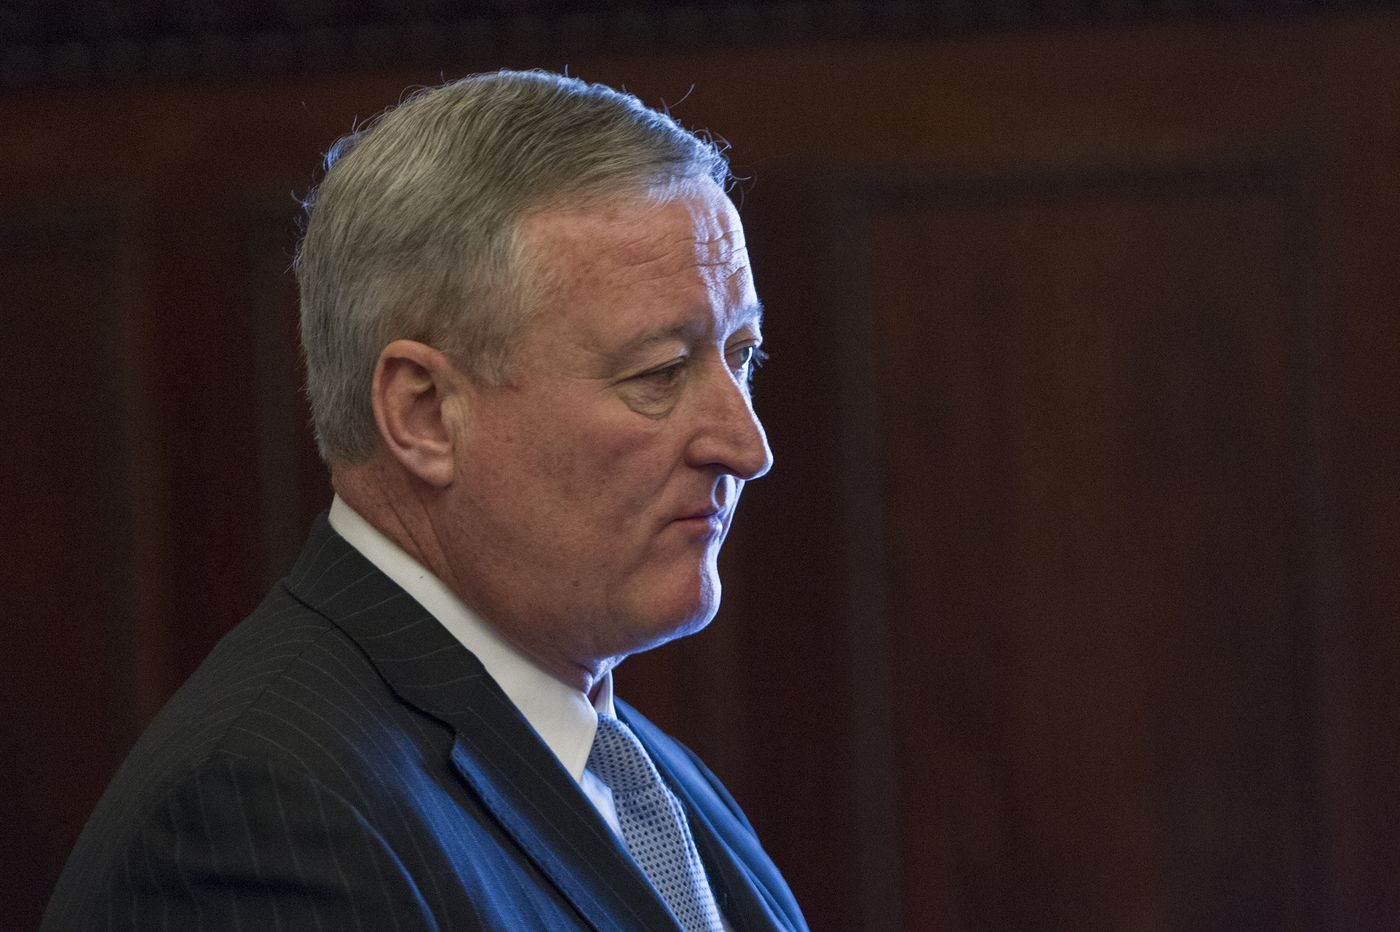 Kenney's first 1,000 days, Pa. special education costs on the rise | Morning Newsletter